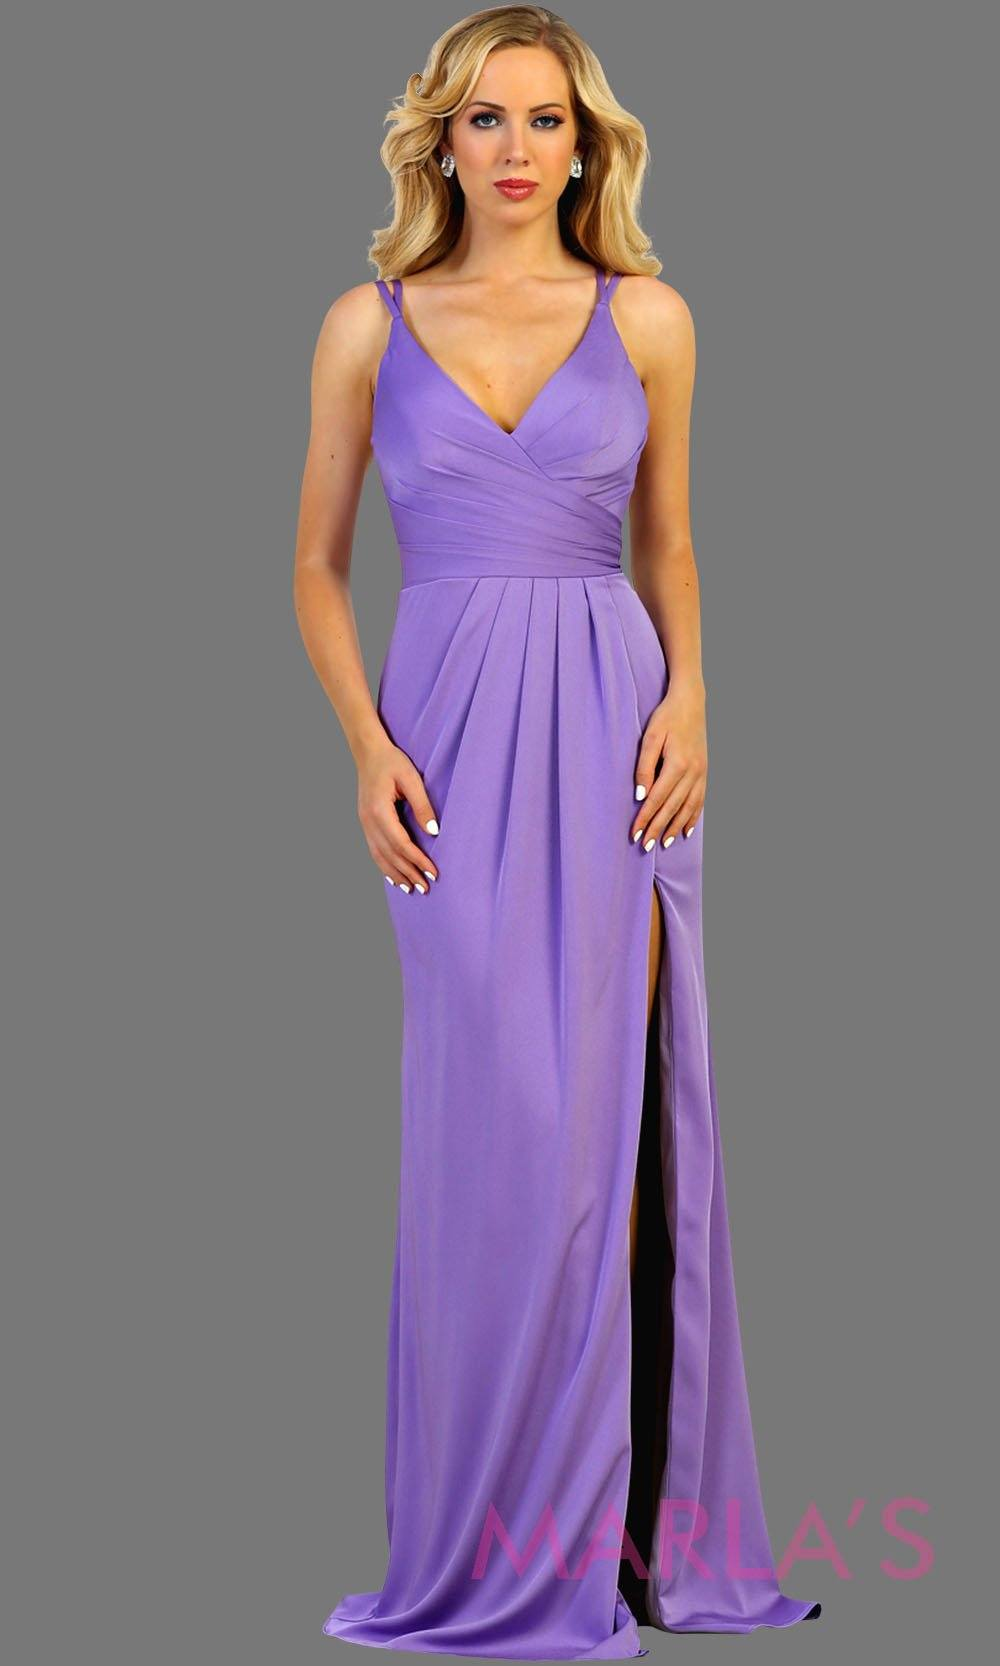 Long prom dresses, Bridesmaid Dress, Prom Dresses, High Slit ...